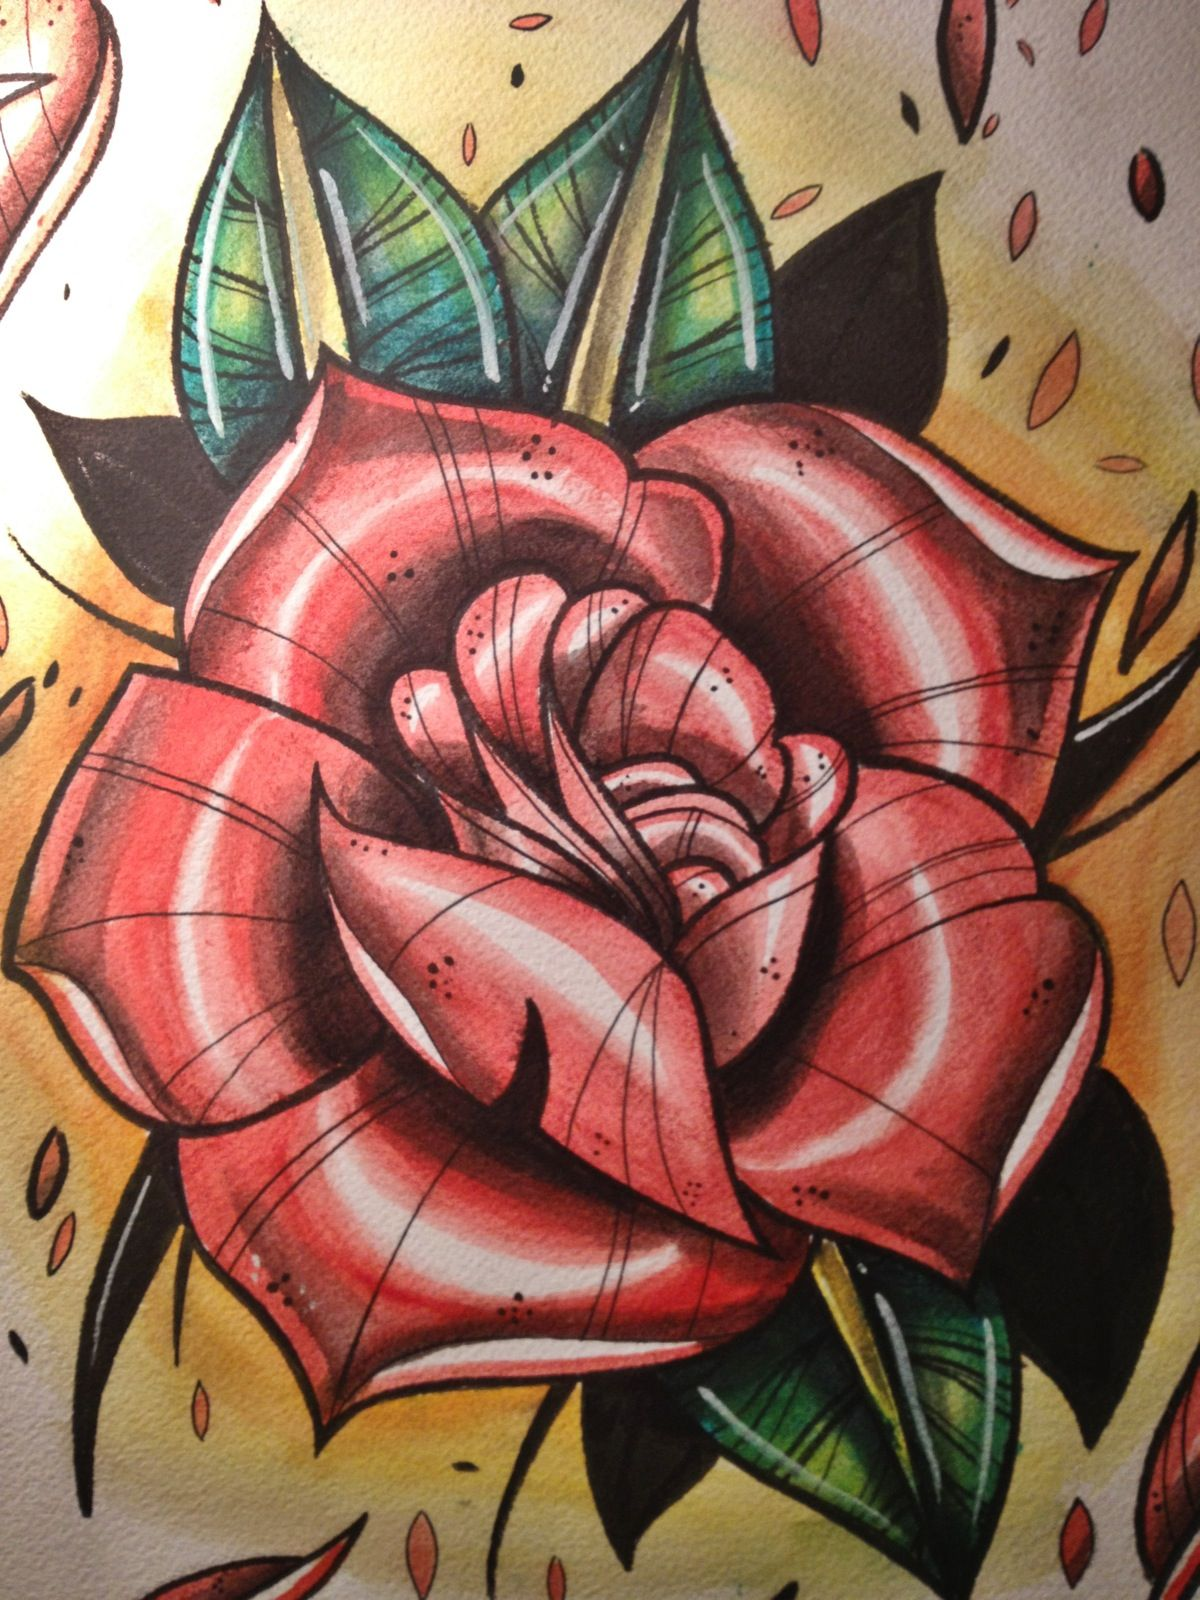 Neotraditional Rose Tattoo : neotraditional, tattoo, Canvas, Design, Company, Youngin, Traditional, Roses,, Tattoos,, Tattoos